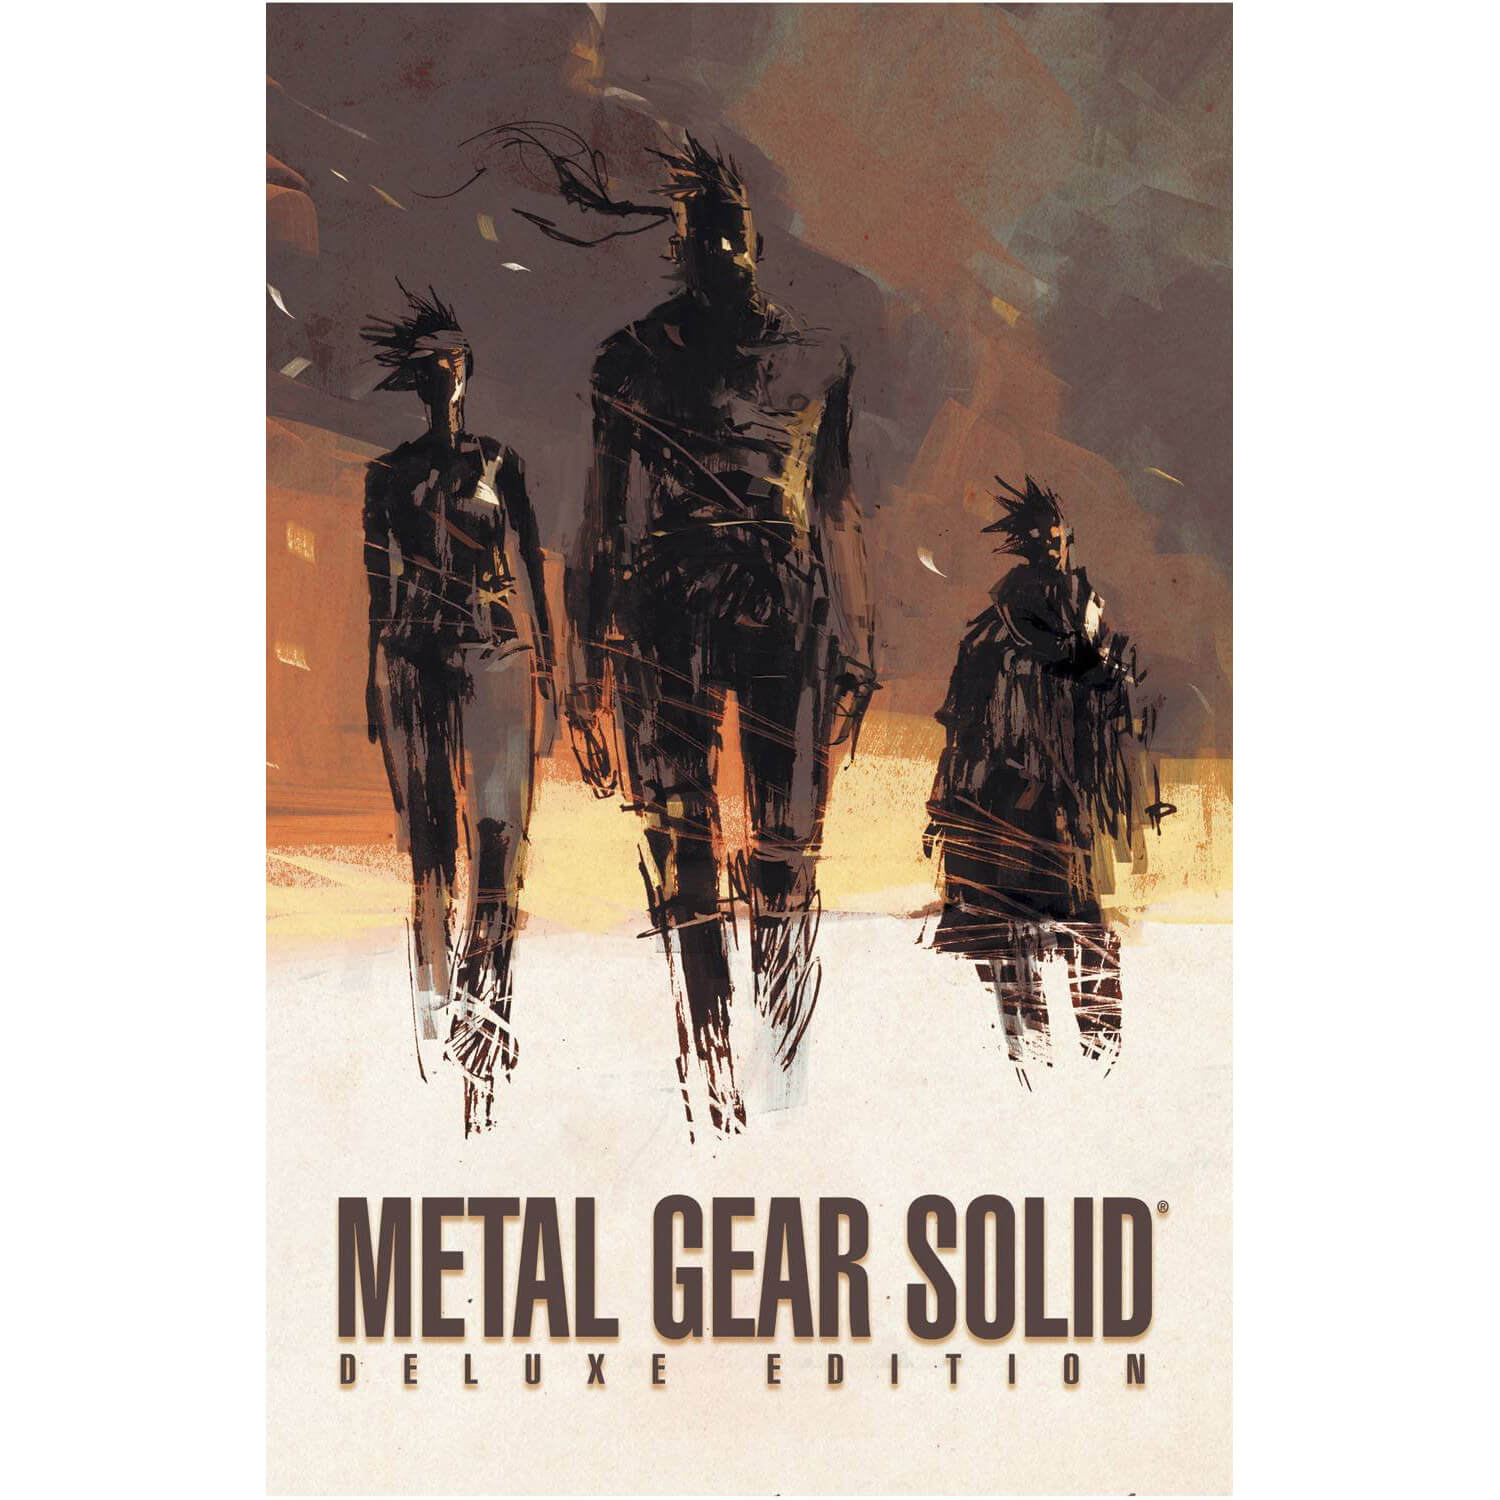 Metal Gear Solid Deluxe Edition Graphic Novel